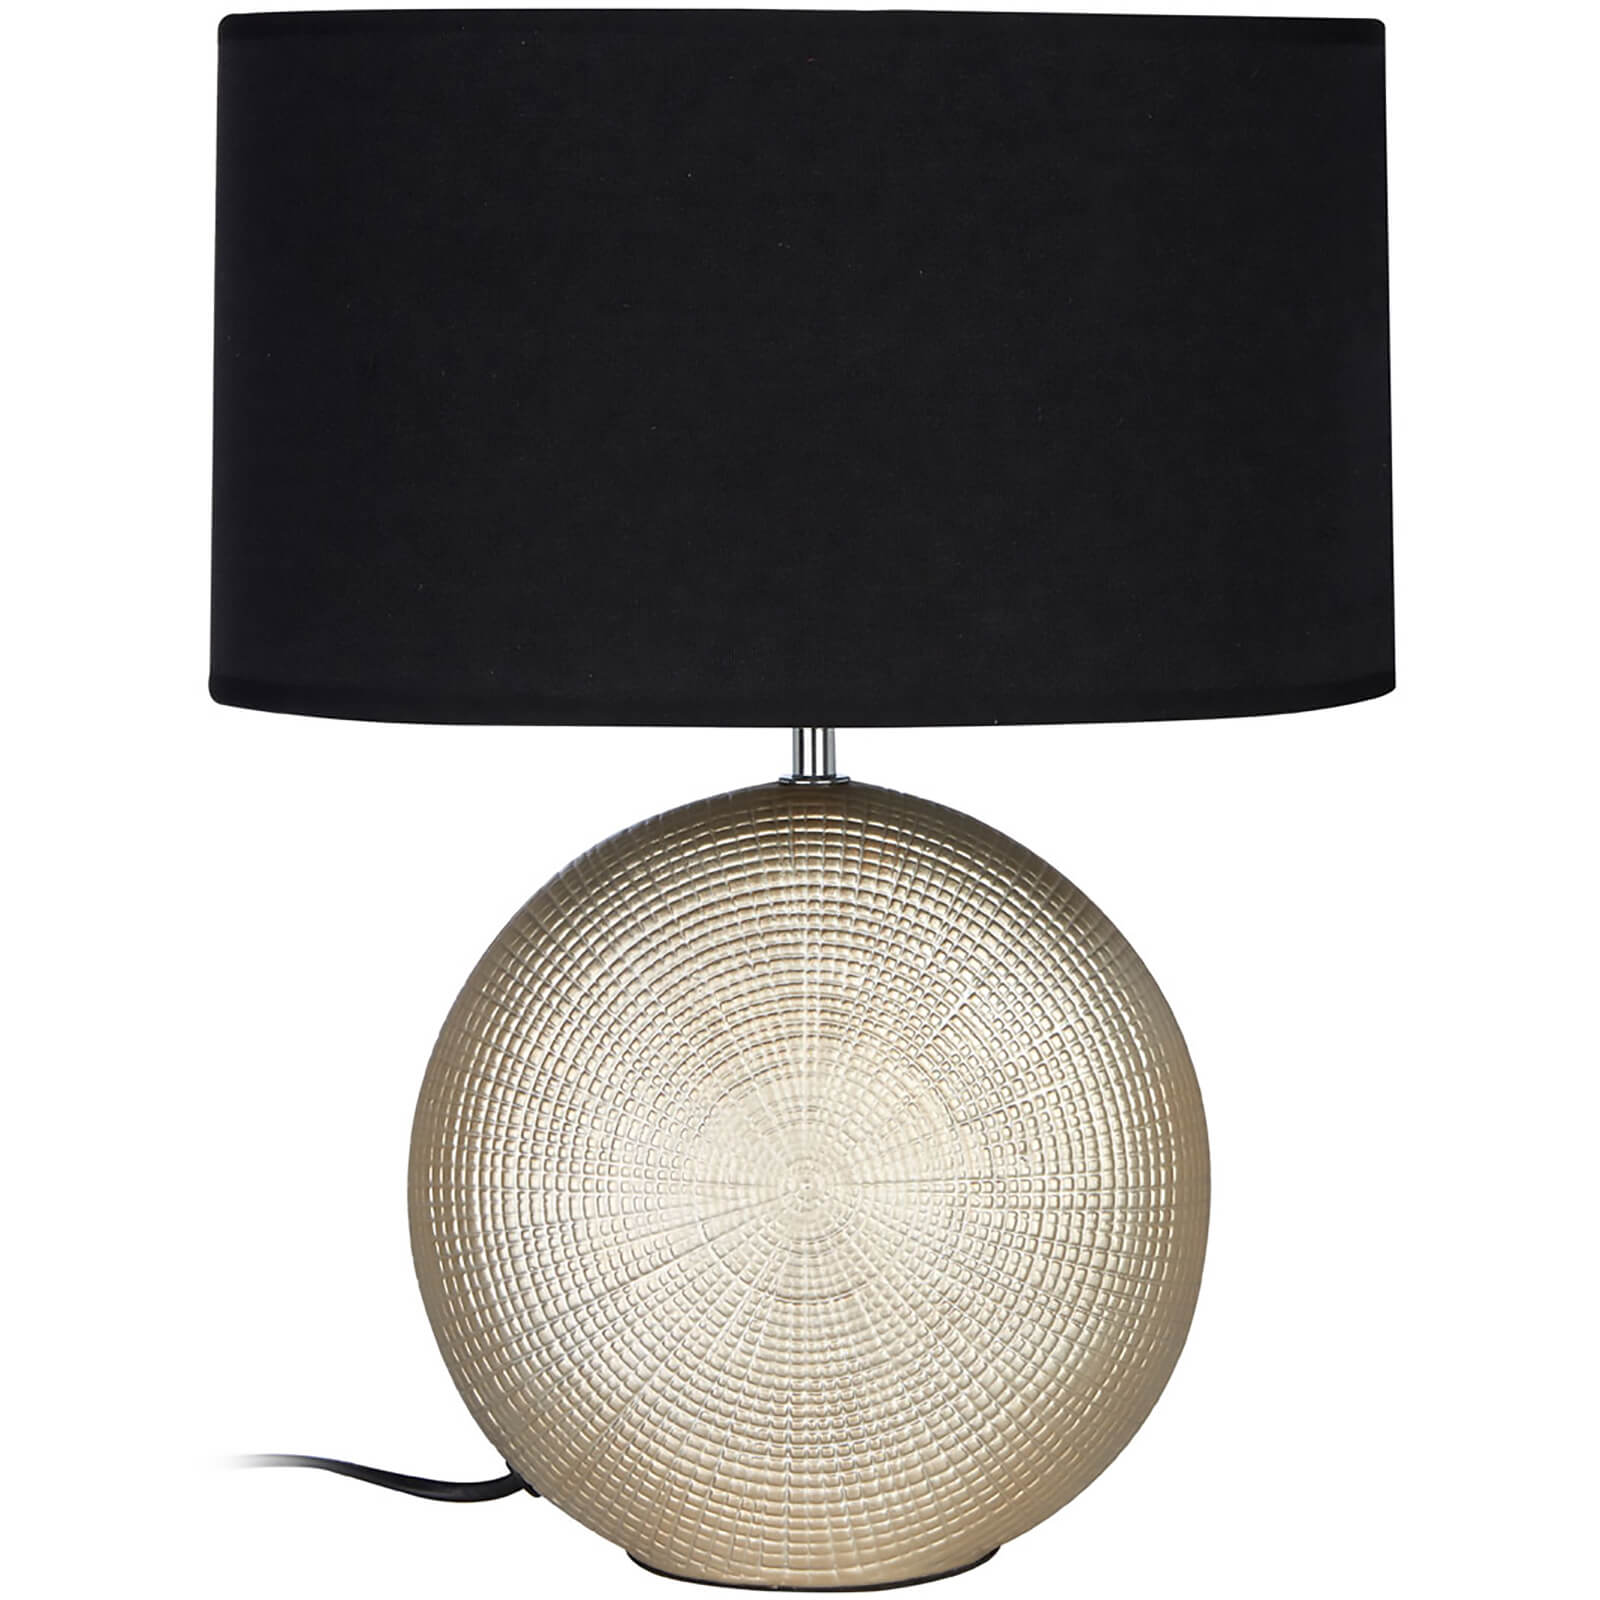 Fifty Five South Whisper Table Lamp - Gold/Black